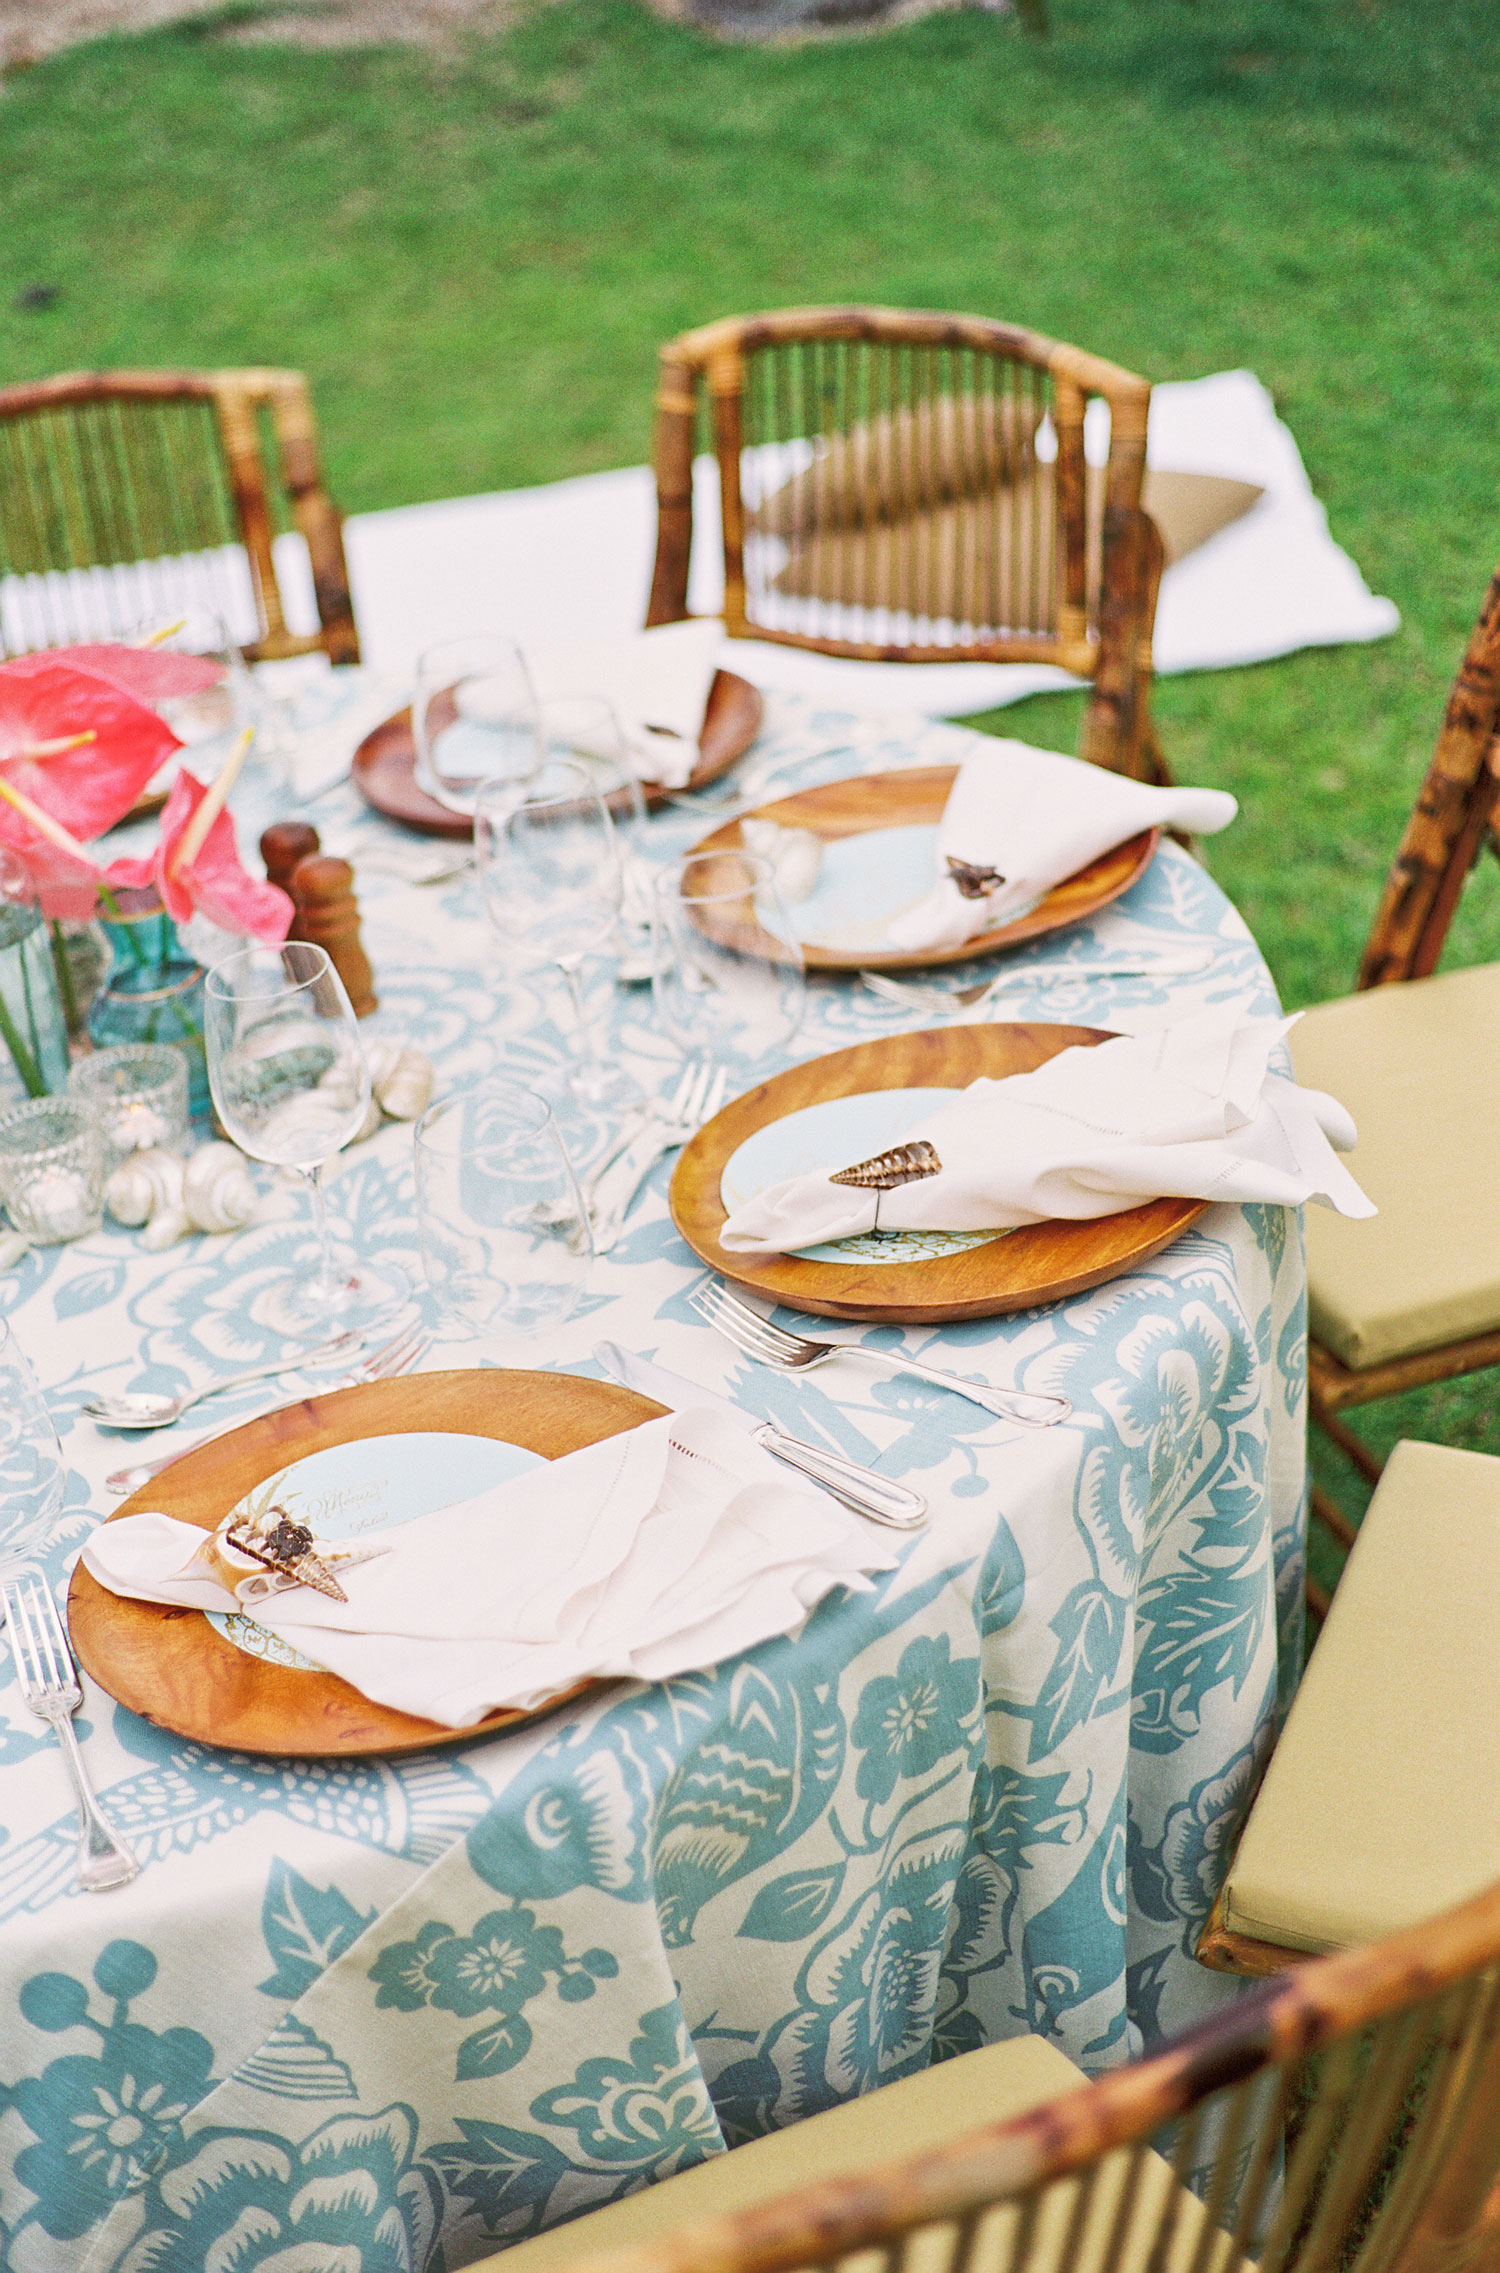 Wedding Inspiration: Reception Tables with Pattern Linens - Inside ...